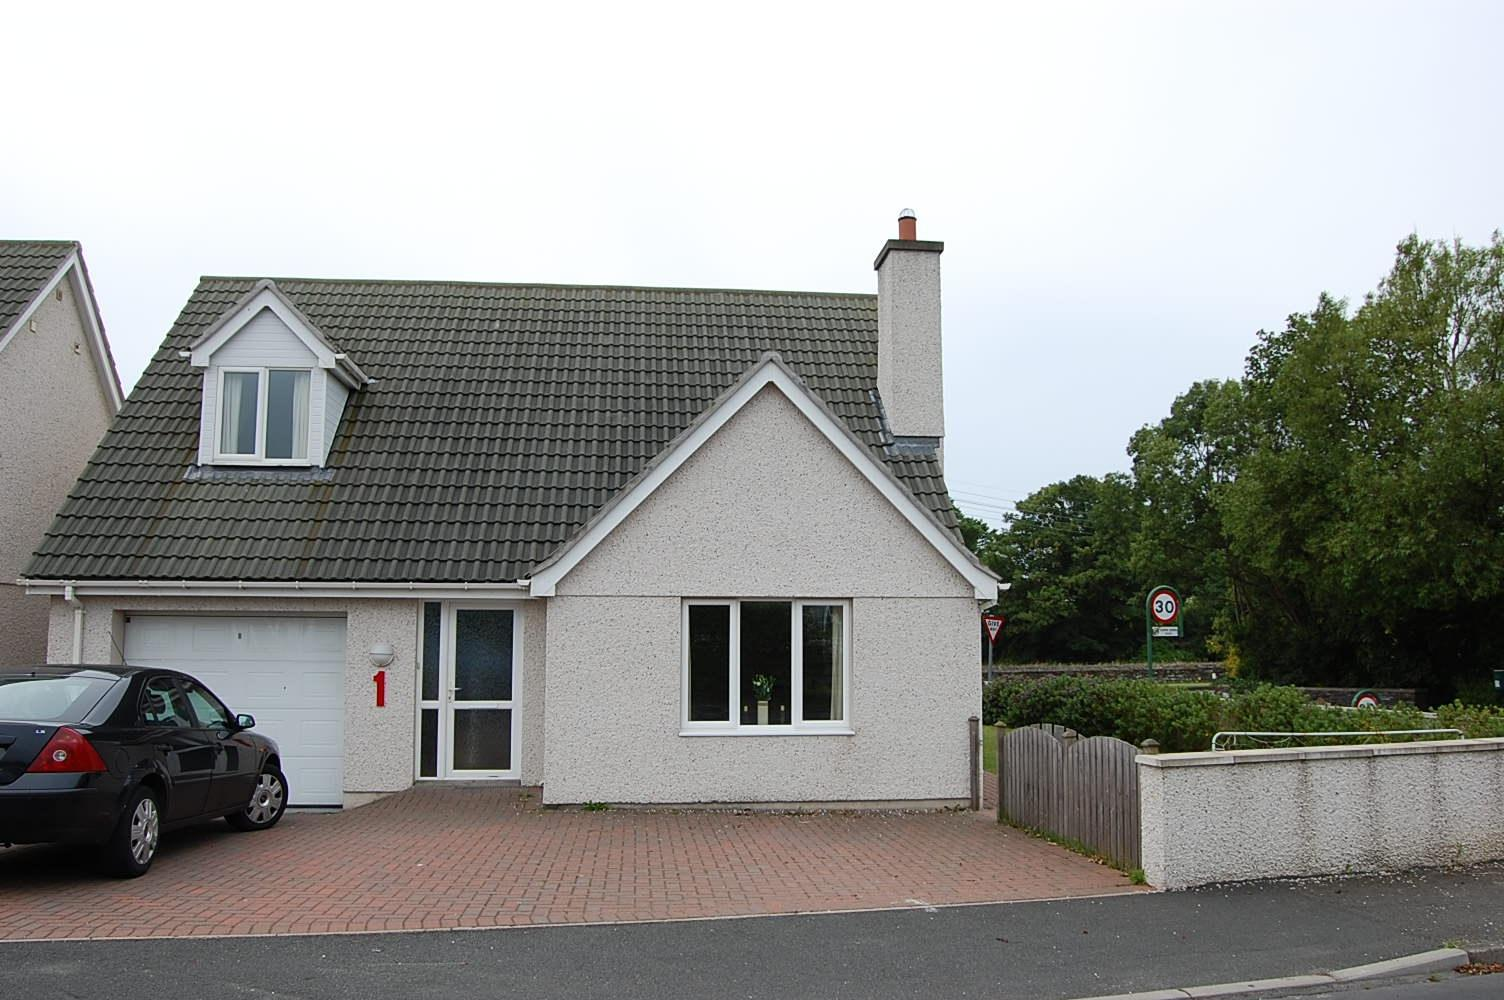 3 bedroom detached house To Let in Colby - 1